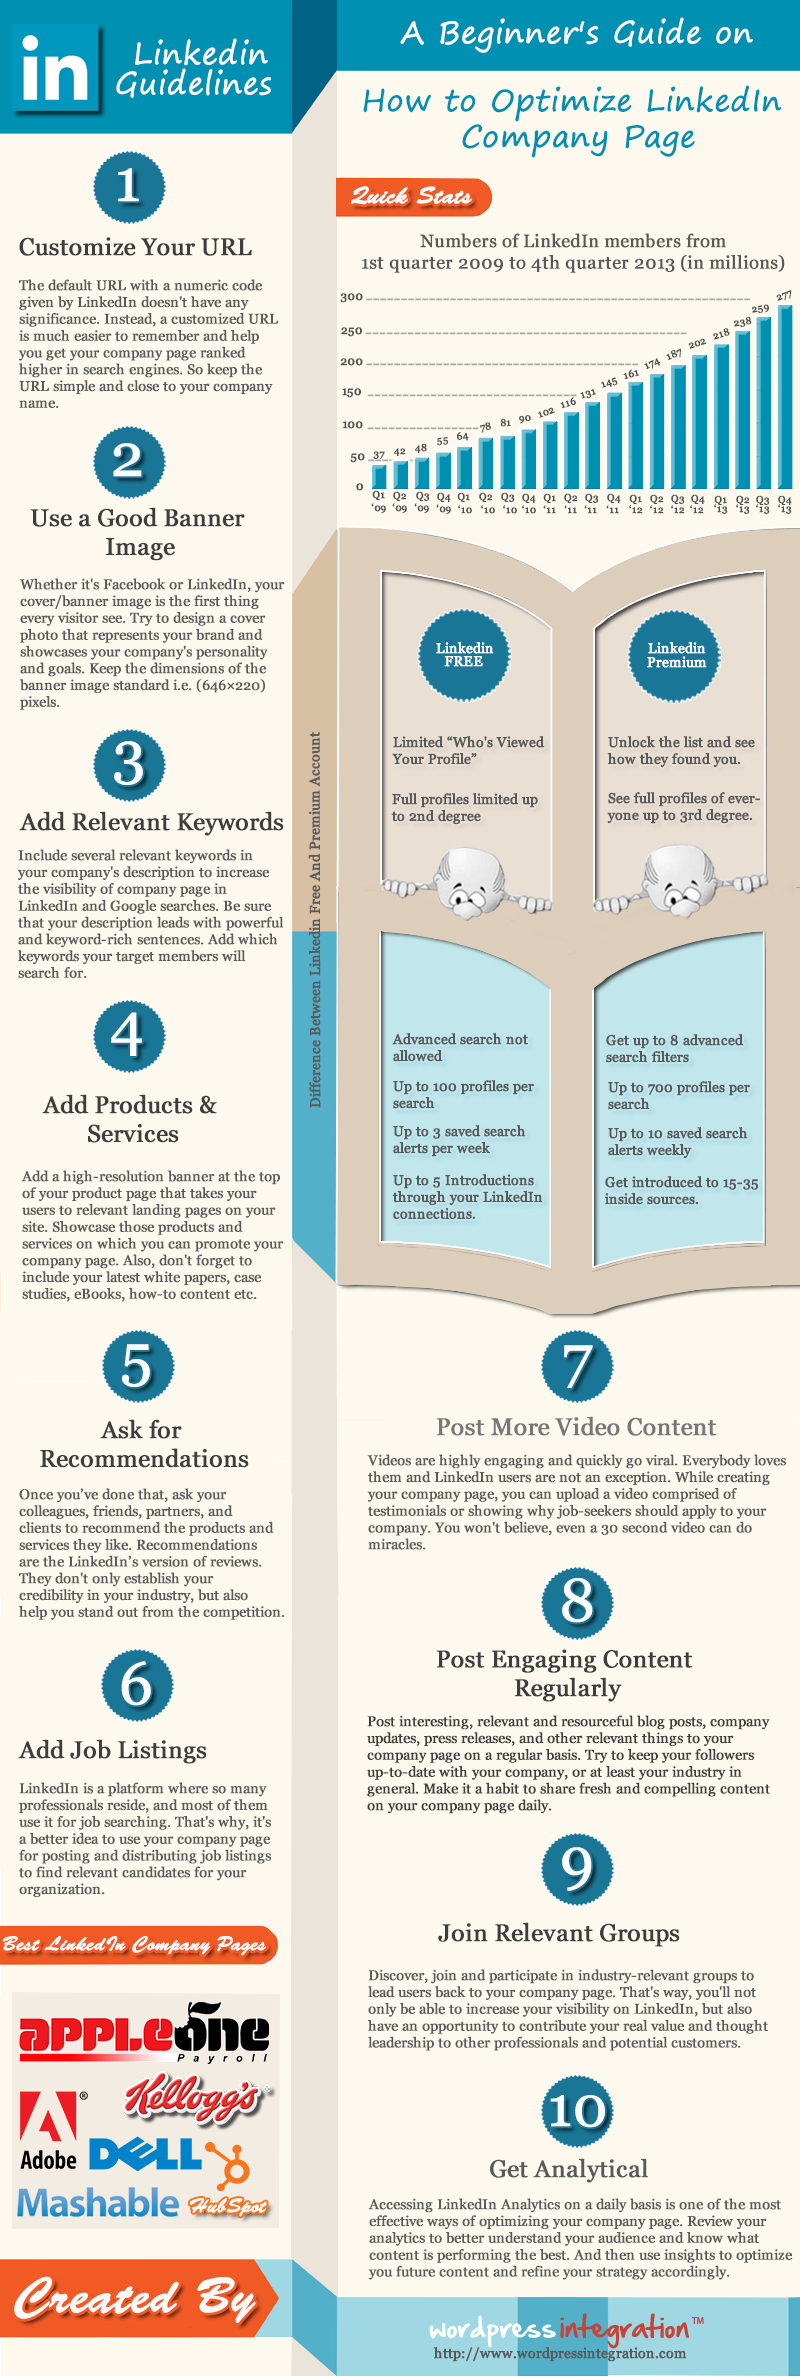 Linkedin Company Page Optimization - Infographic